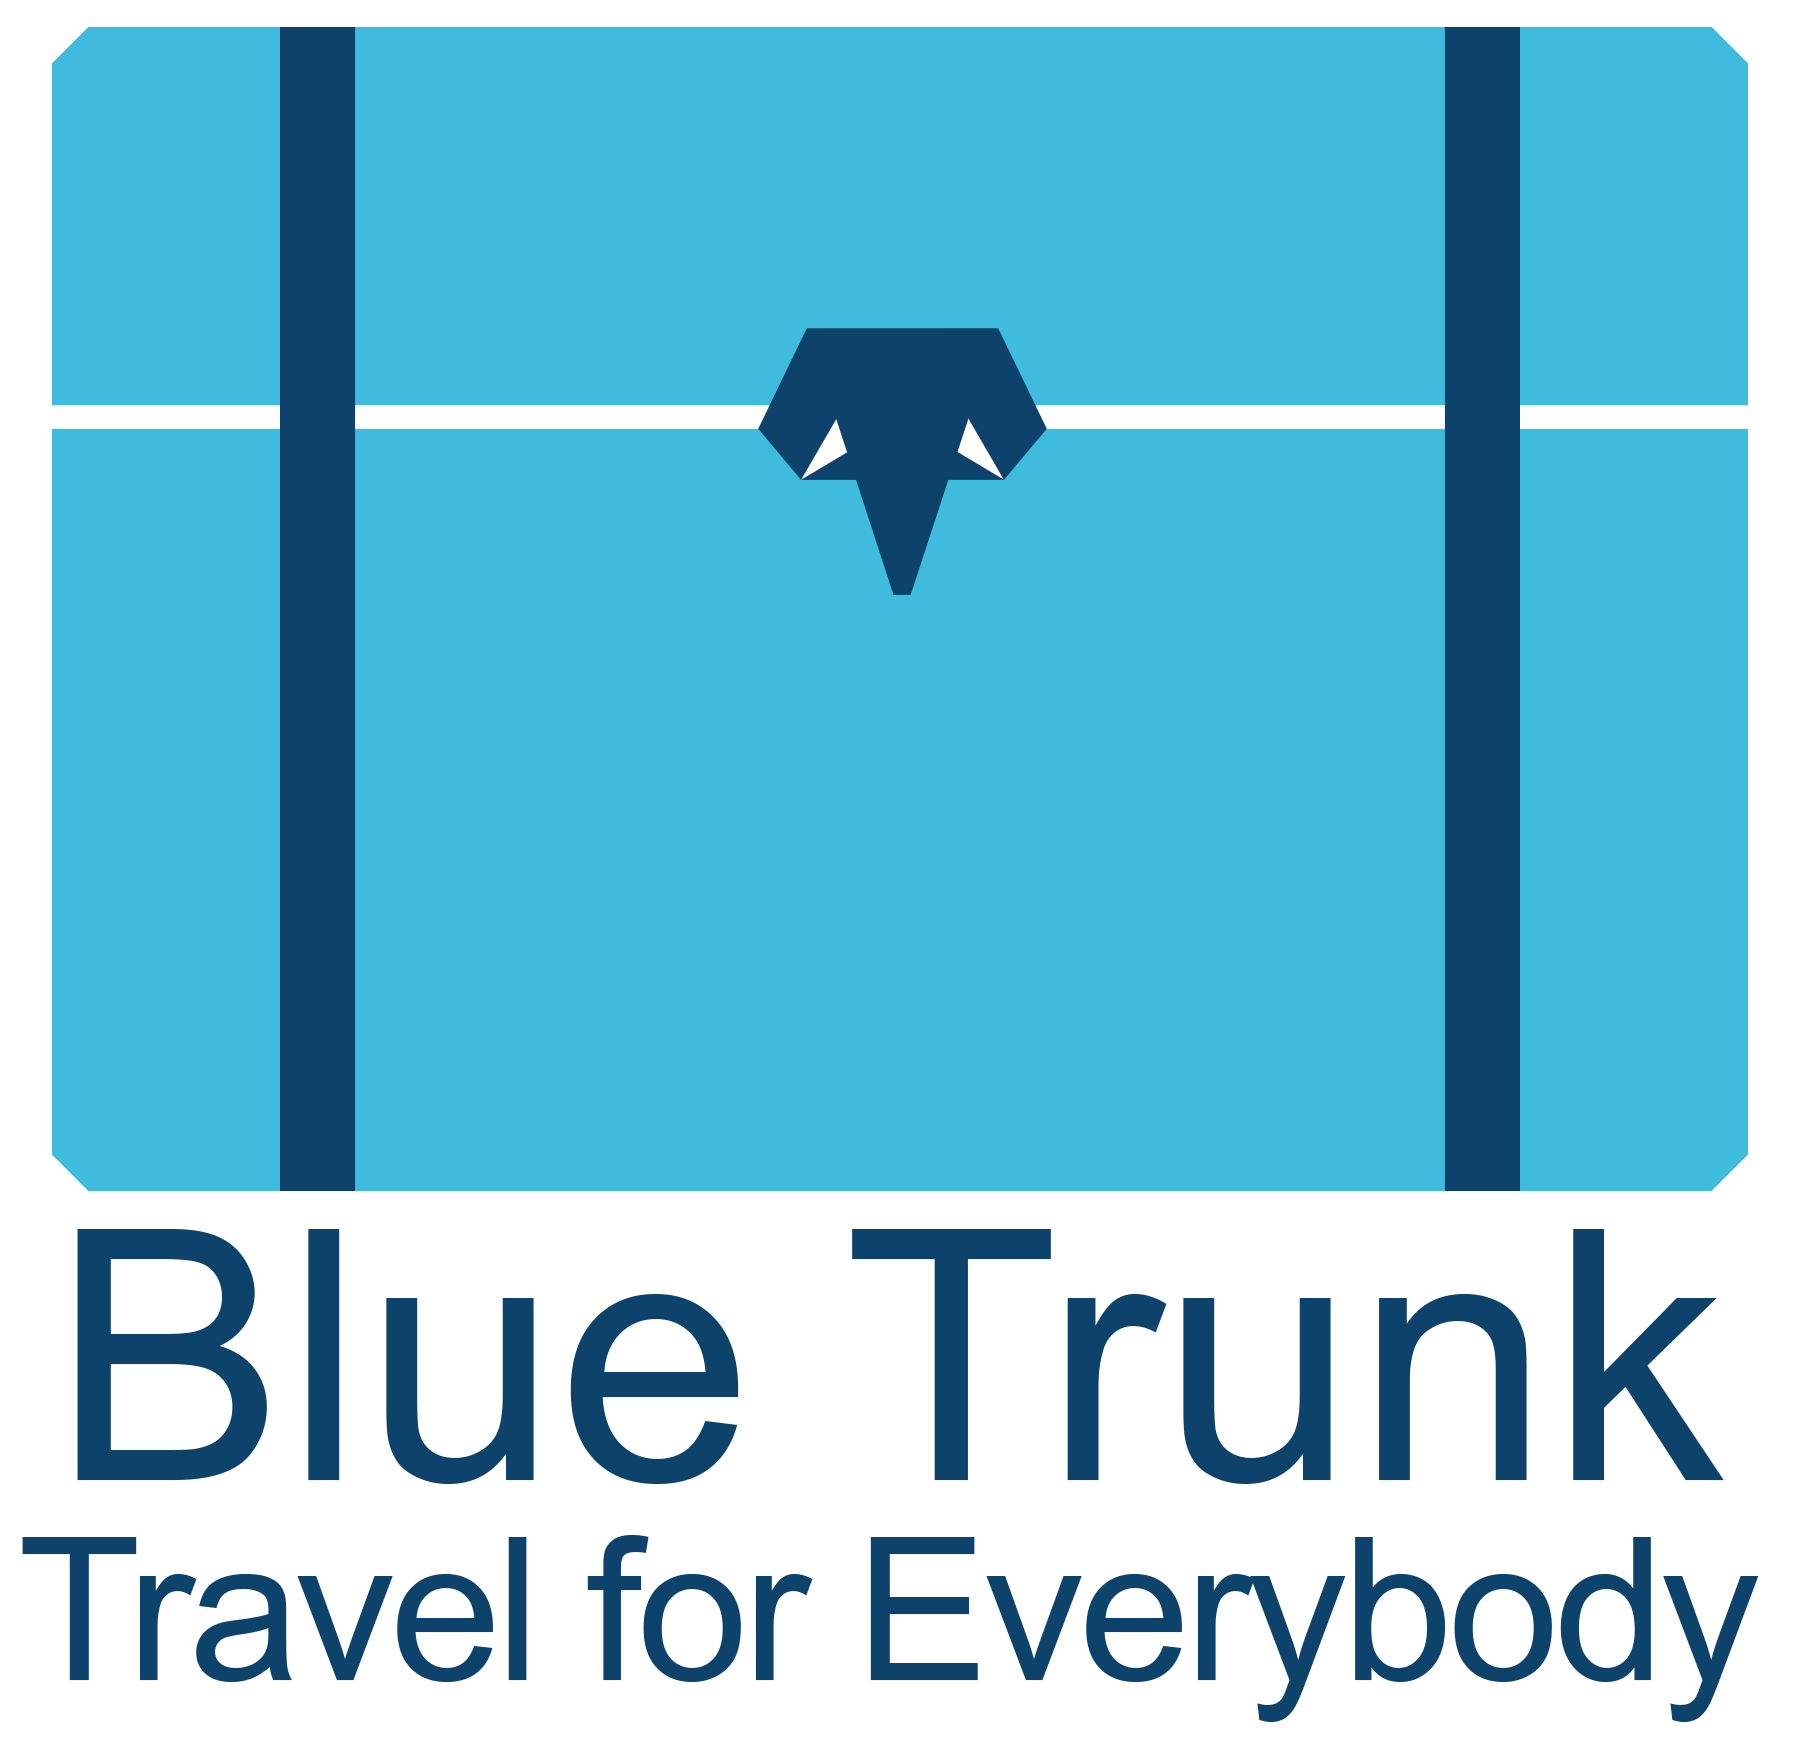 Blue Trunk Foundation: Travel for Everybody